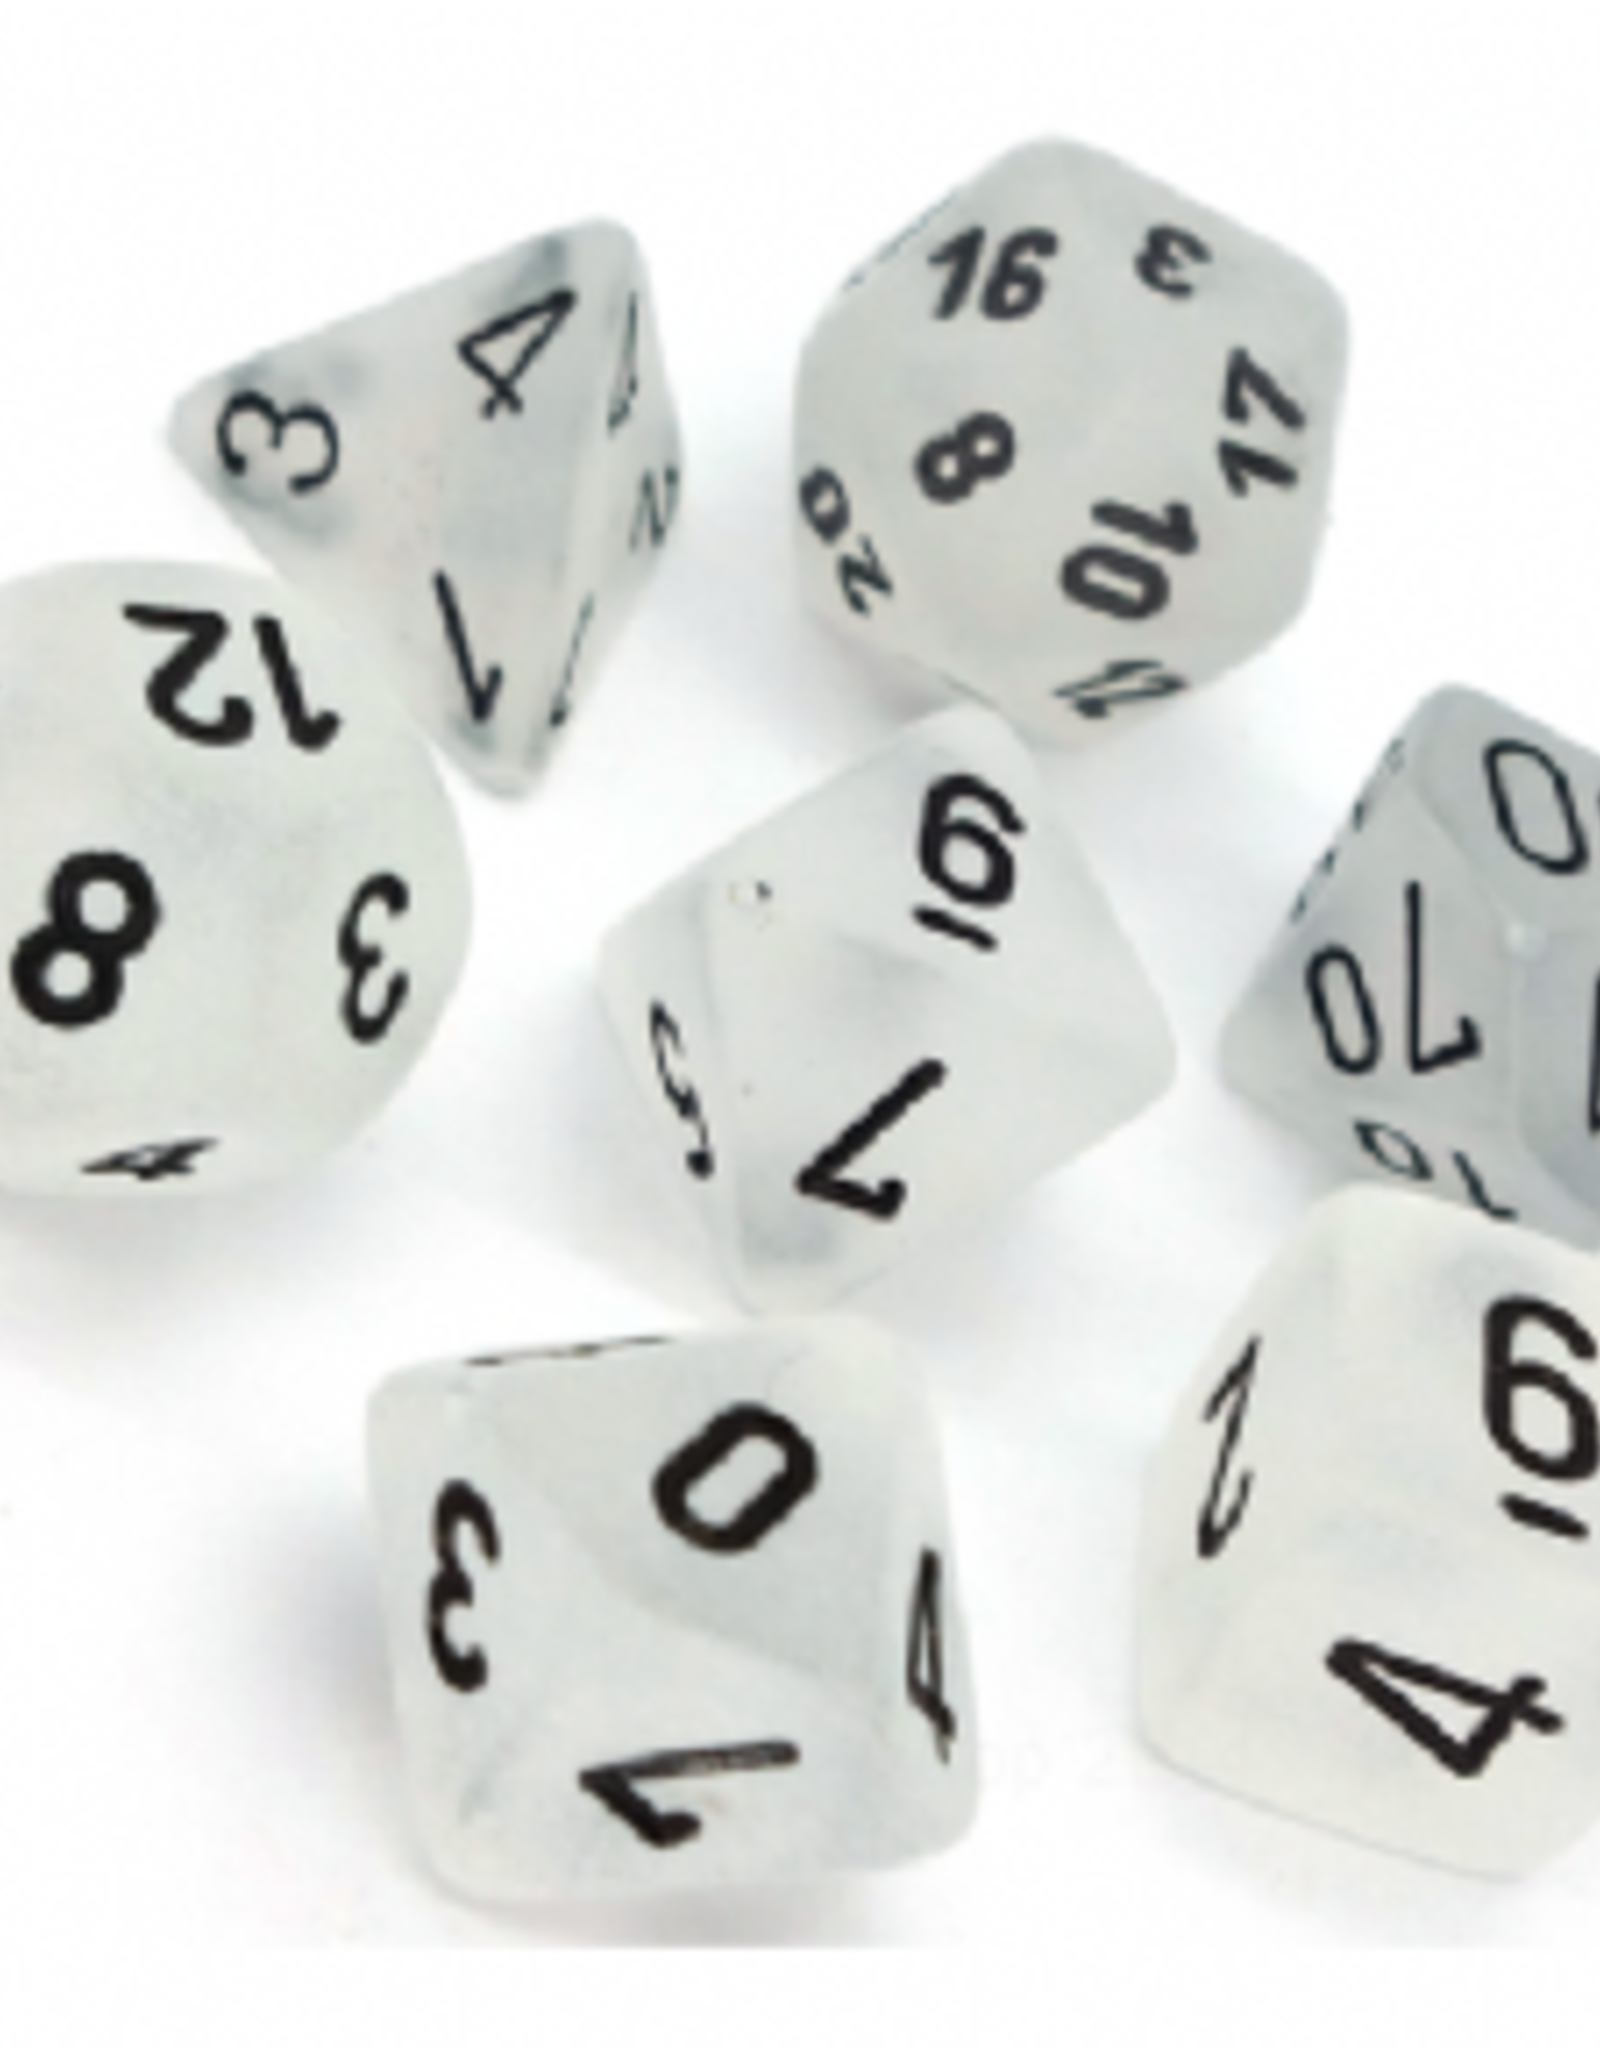 Chessex Dice Block 7ct. - Frosted Clear/Black